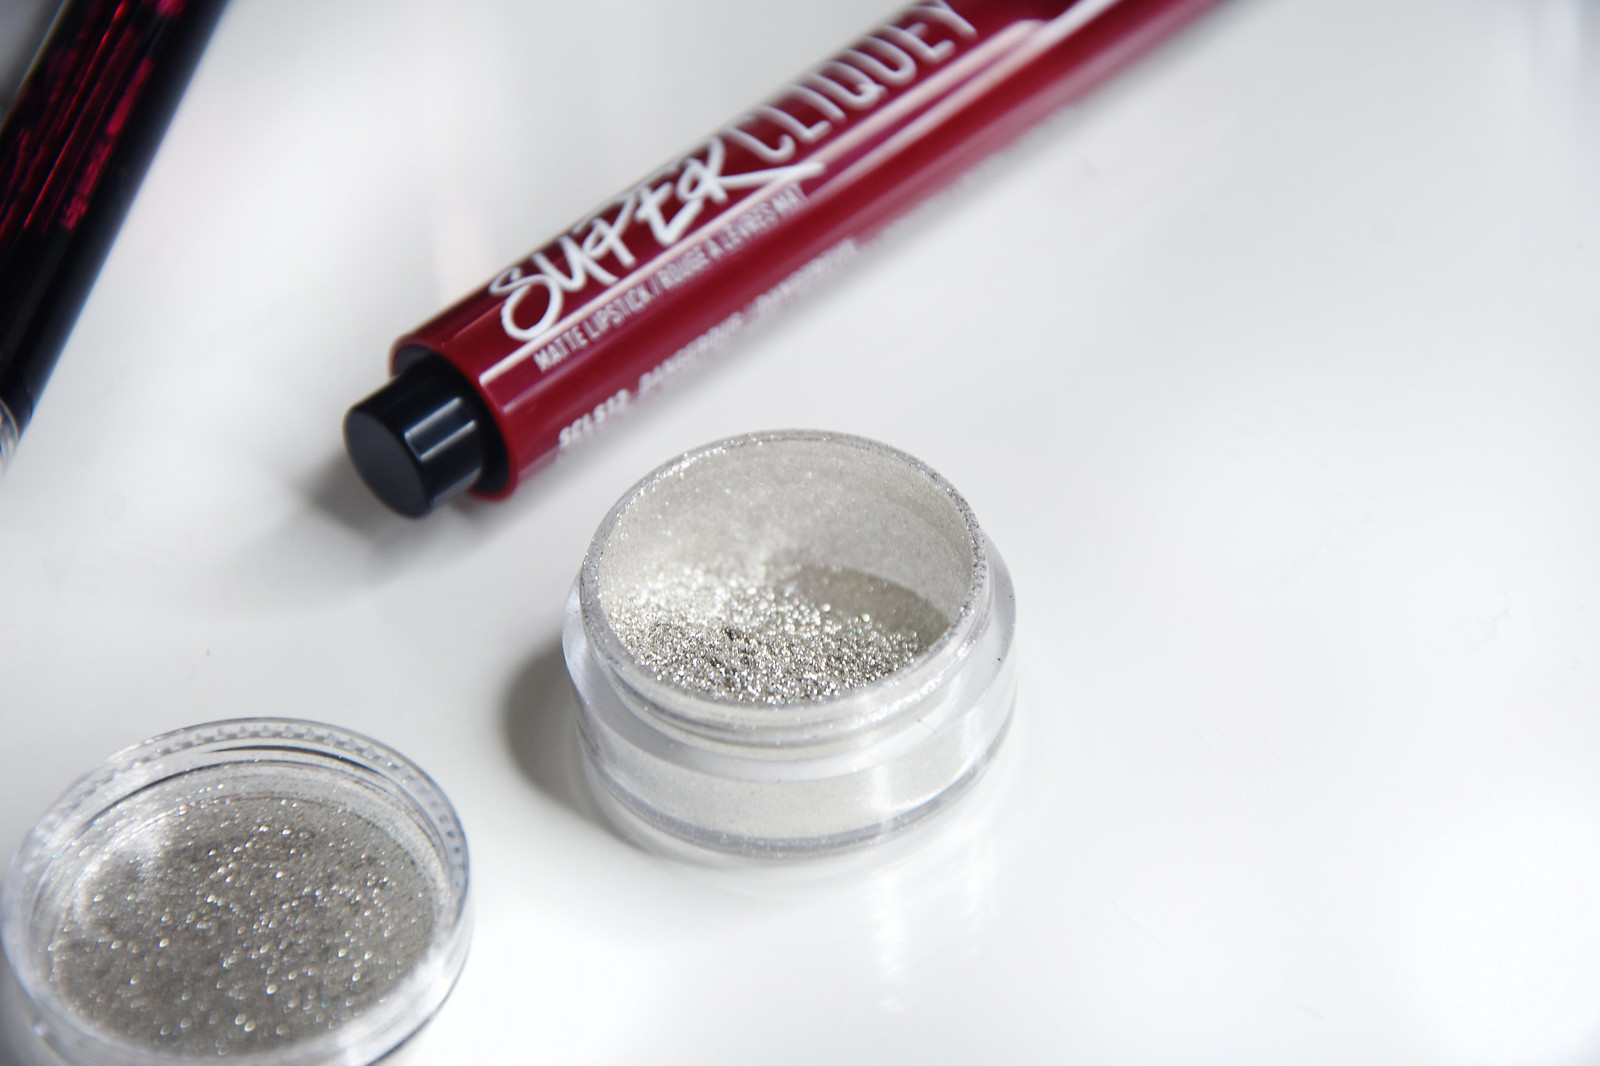 essence Metal shock powder